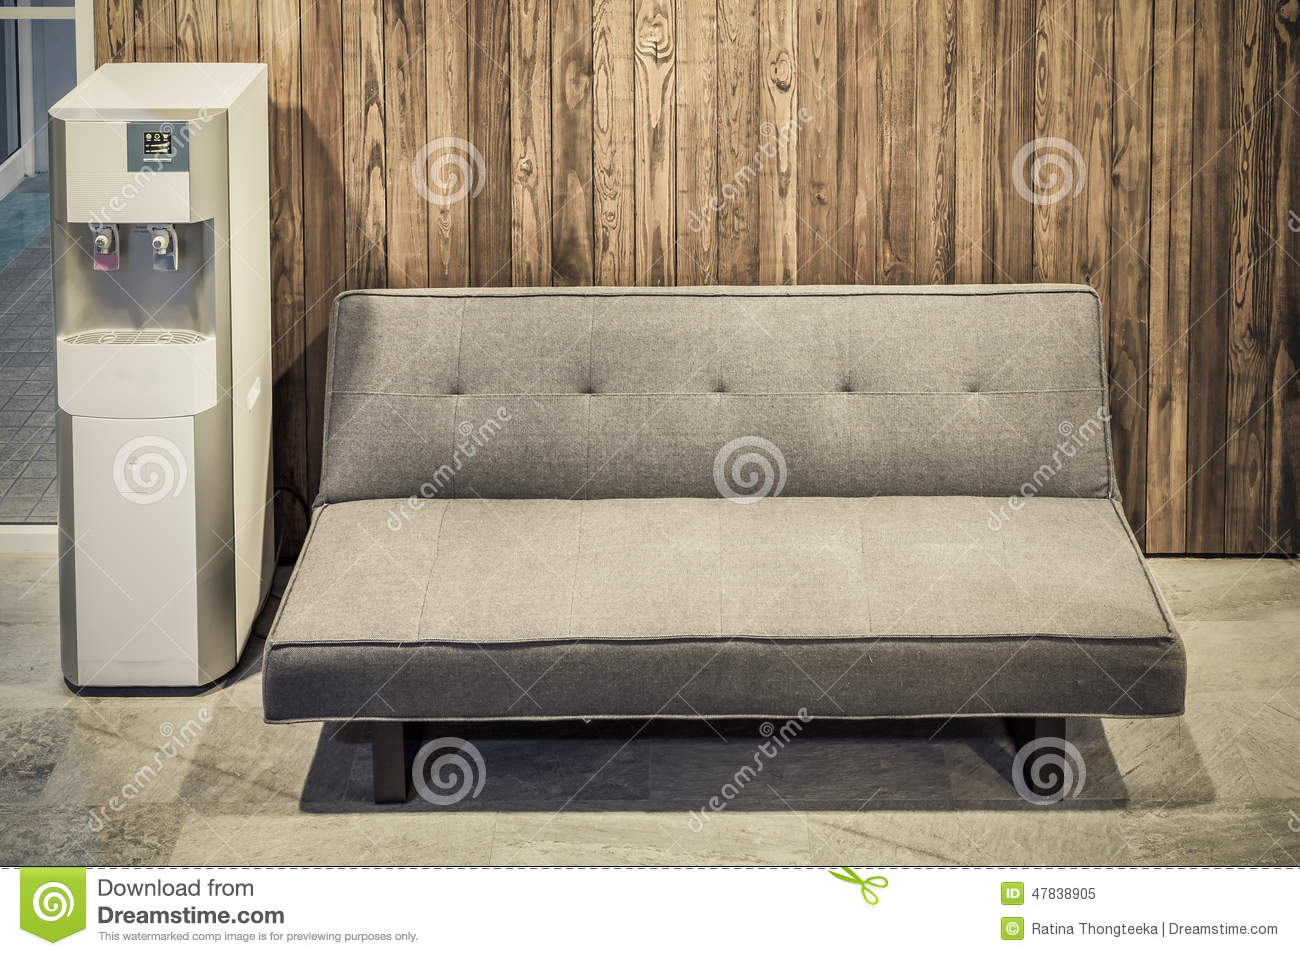 Sofa furniture and water cooler on wood texture stock for Coole couch